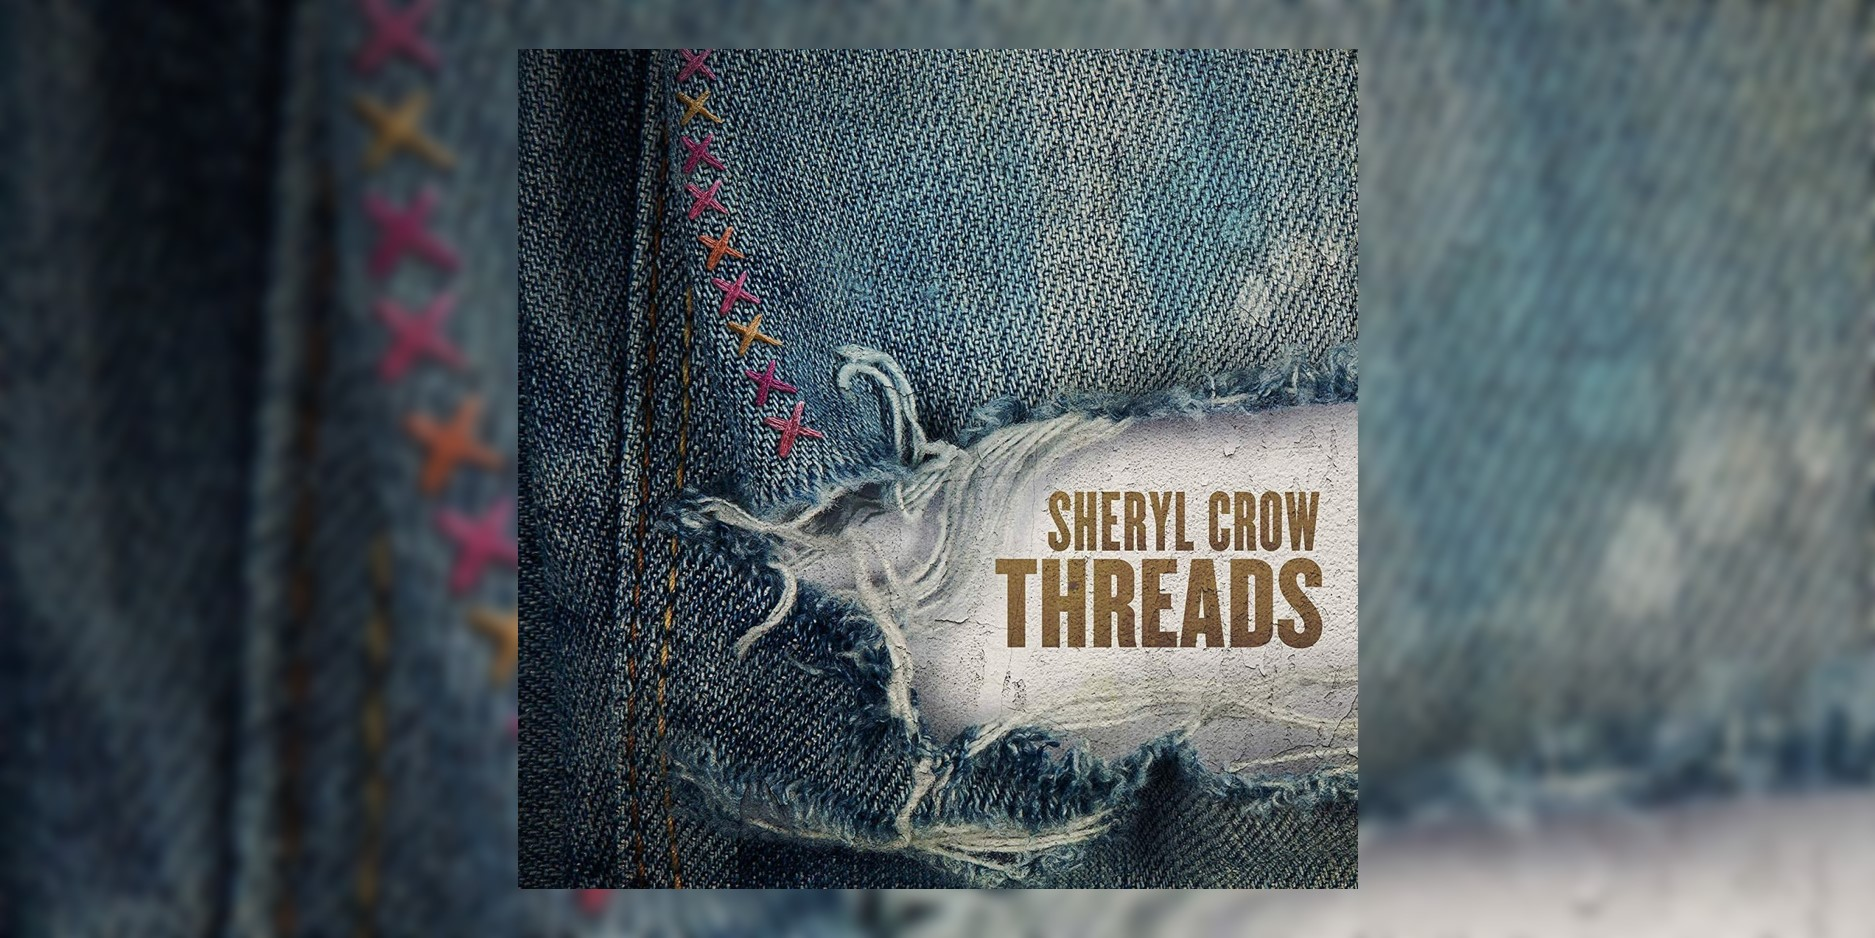 Albumism_SherylCrow_Threads_MainImage.jpg